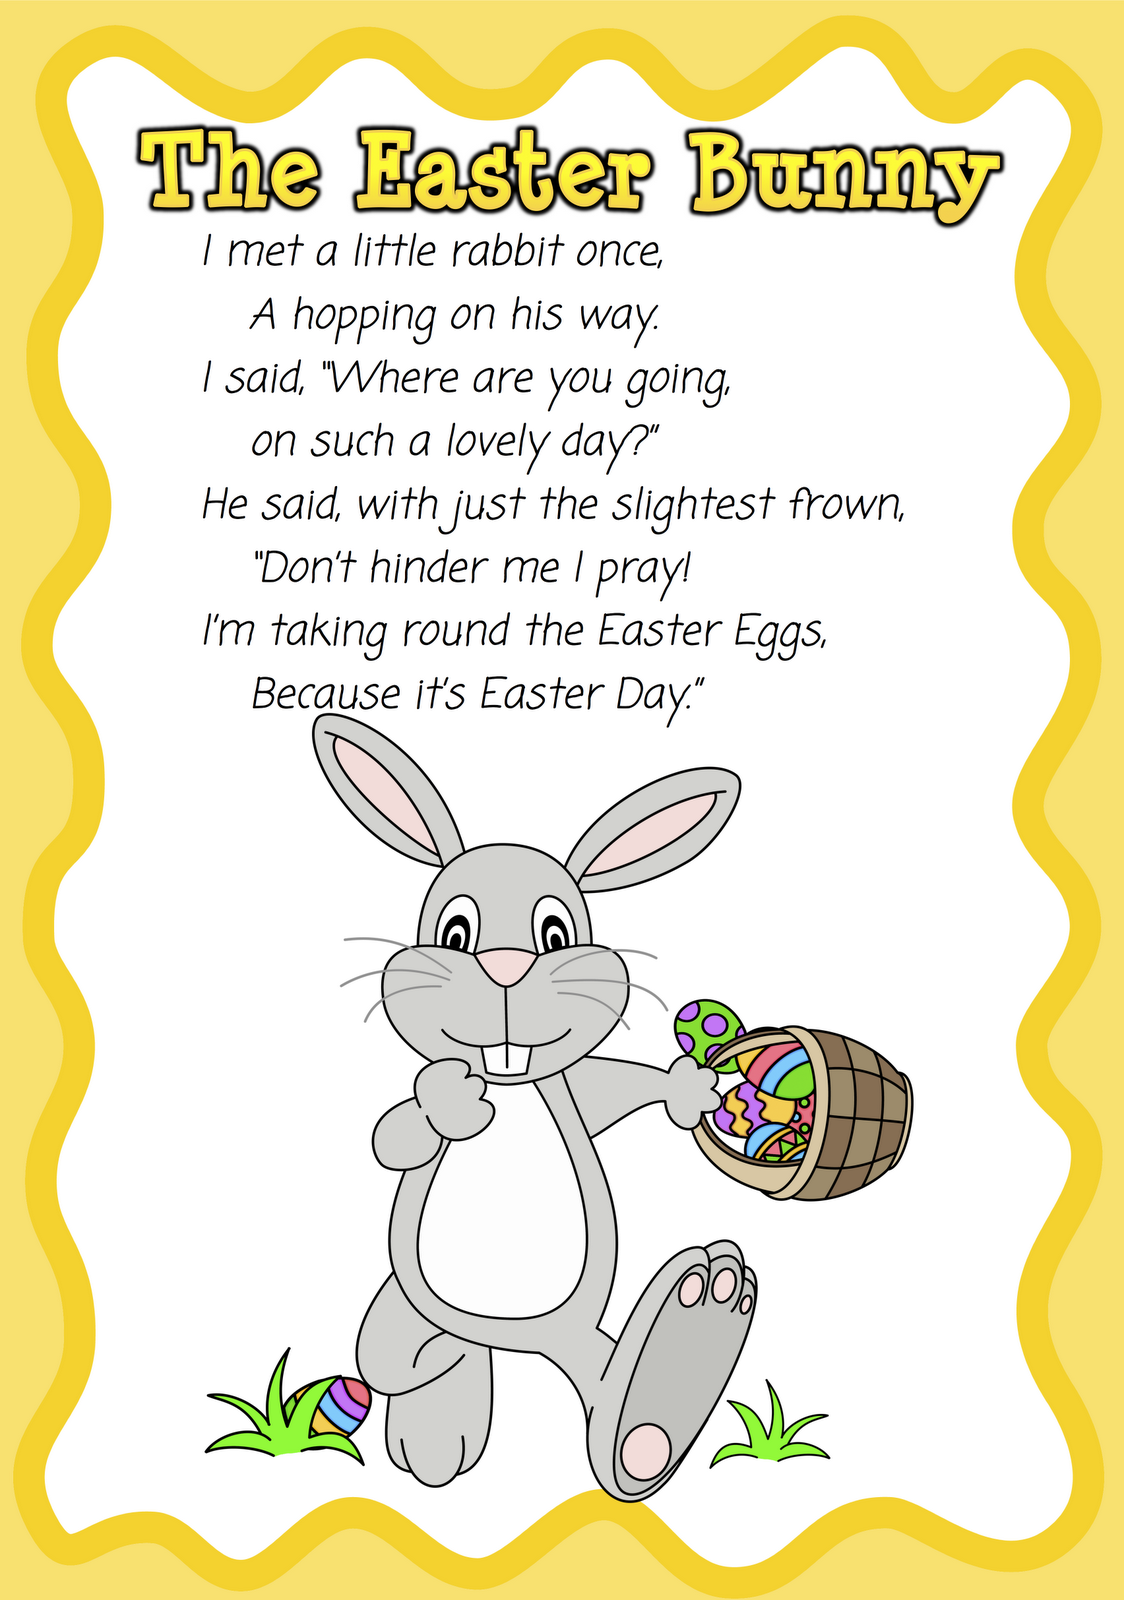 Easter Poems On Bunny And Eggs For Kids To Make A PerfectEaster Poems Check Out Best Short Easter Poems